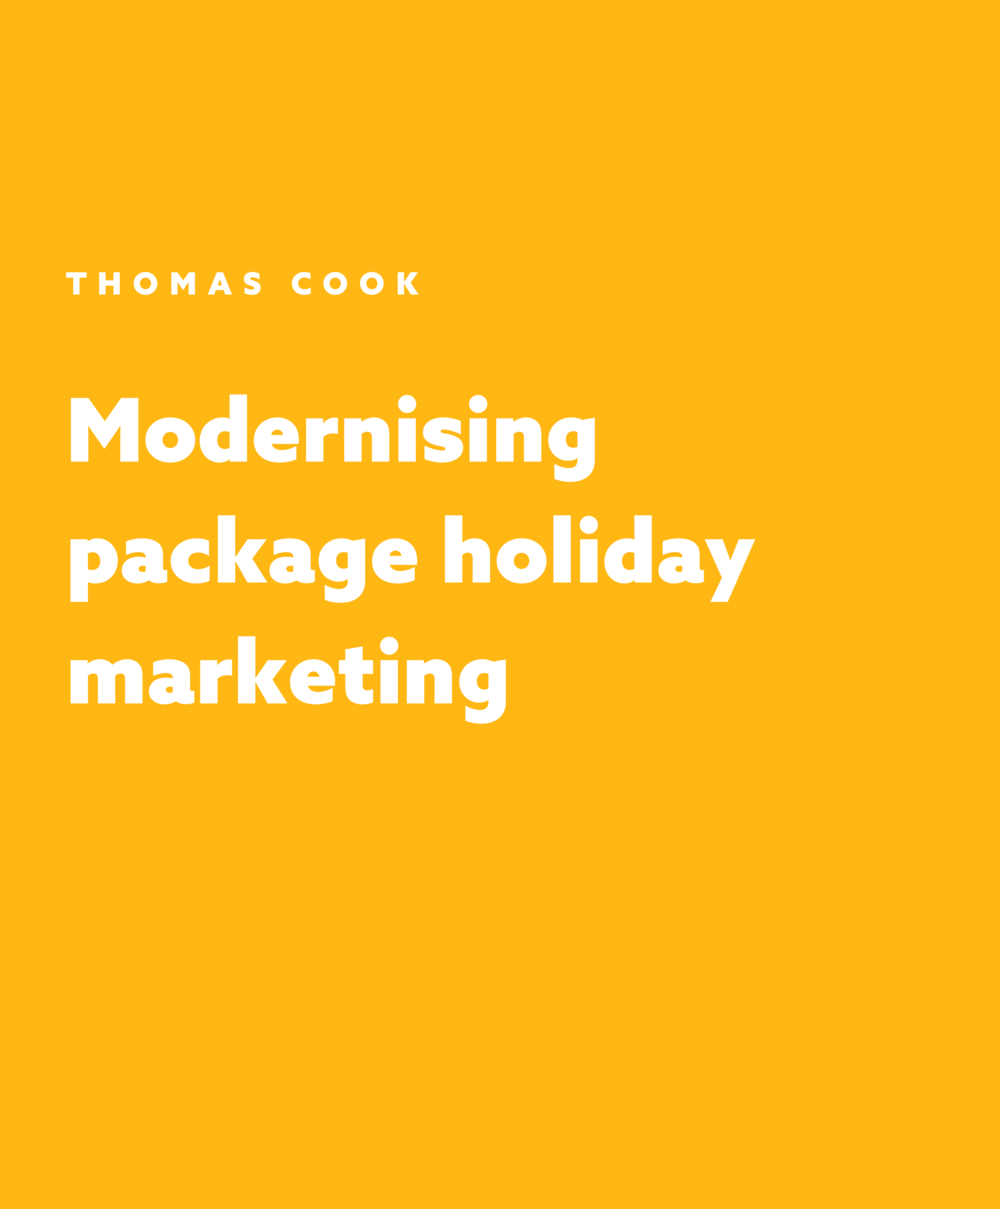 THOMAS COOK.png